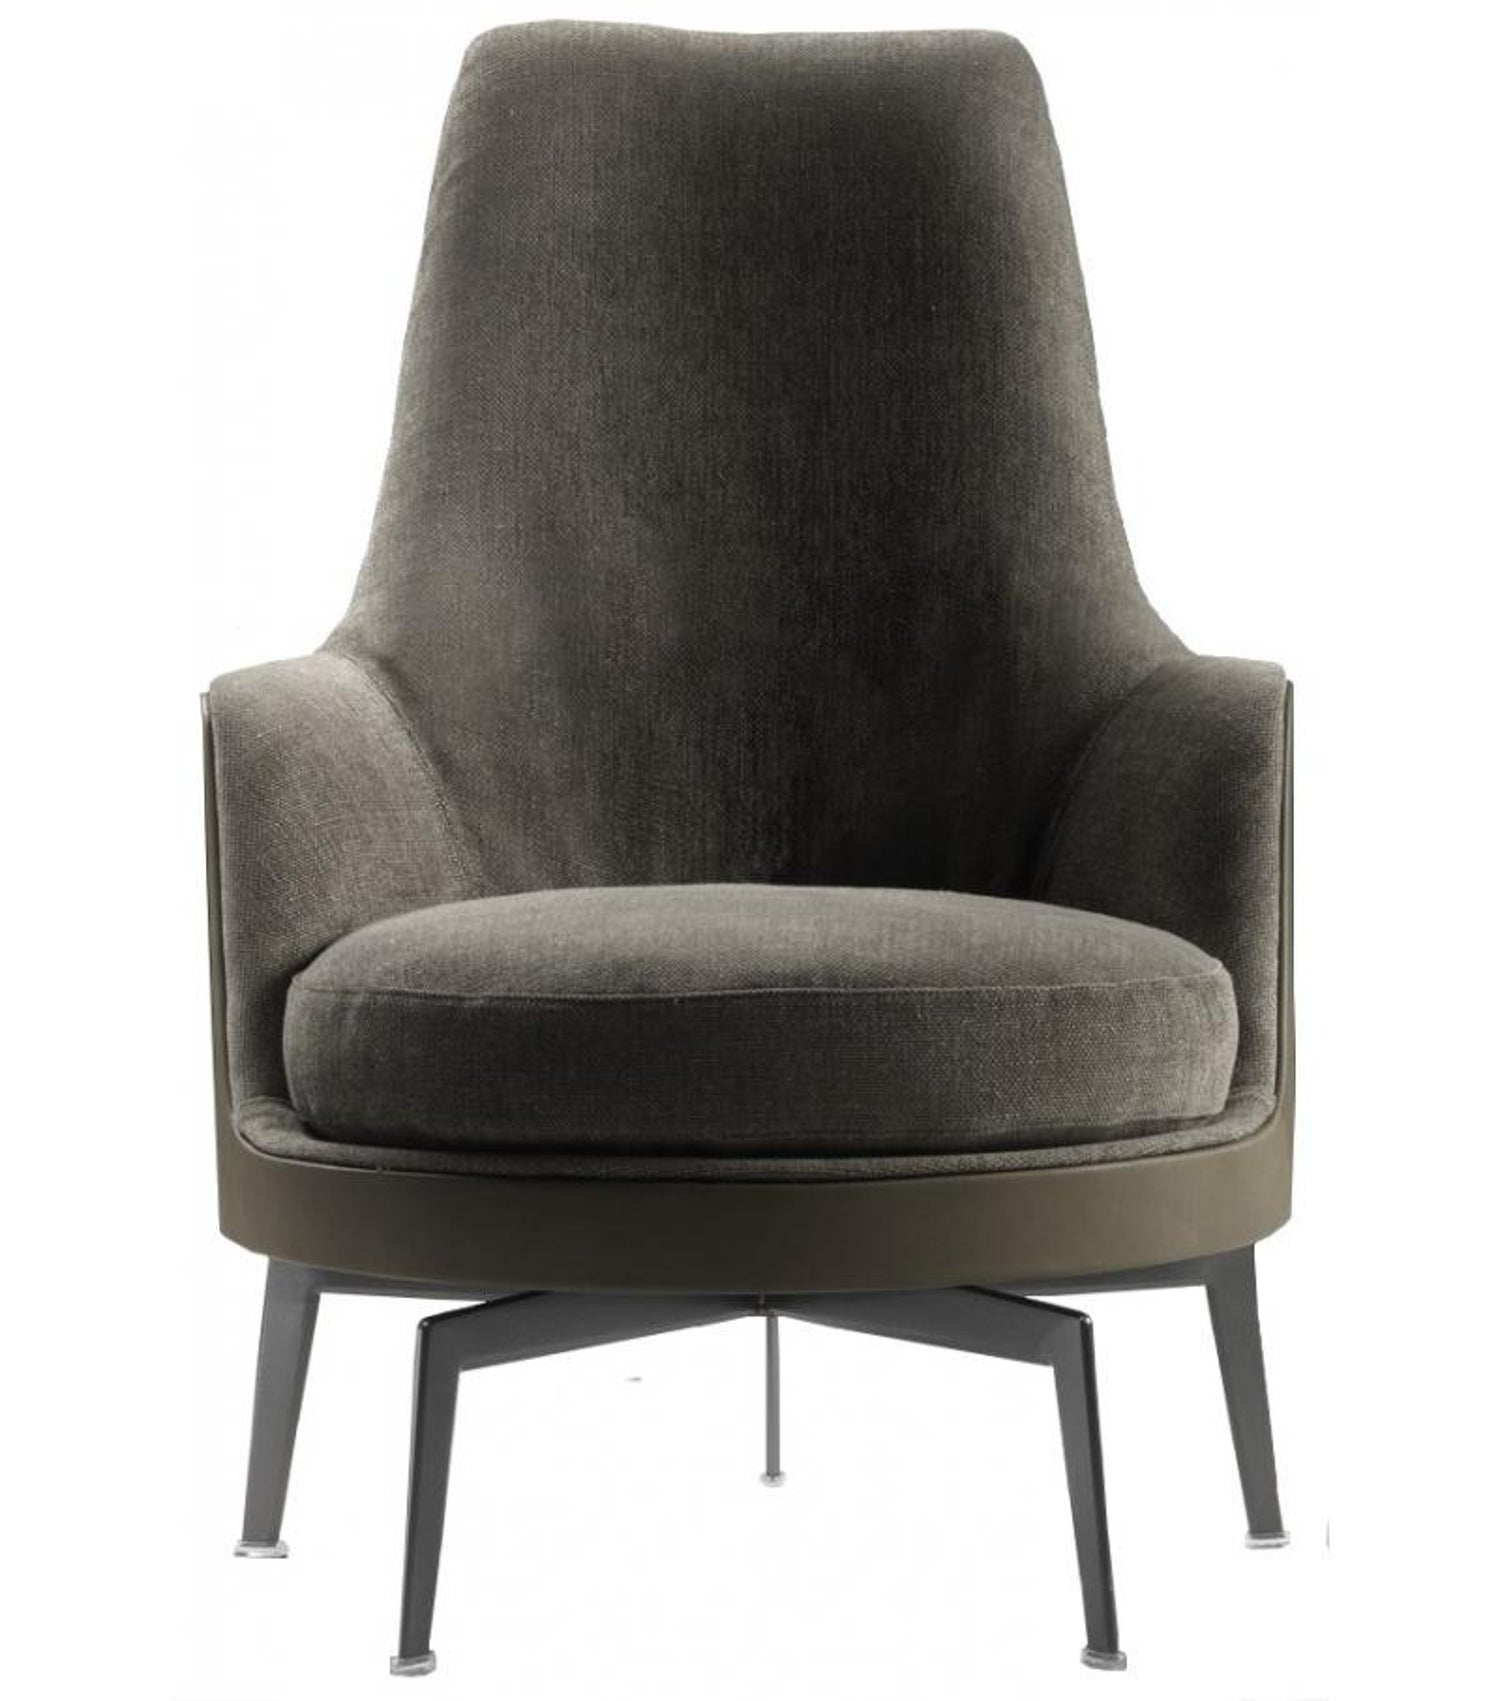 Mohair And Leather With Bronzed Base Guscioalto Soft Armchair By